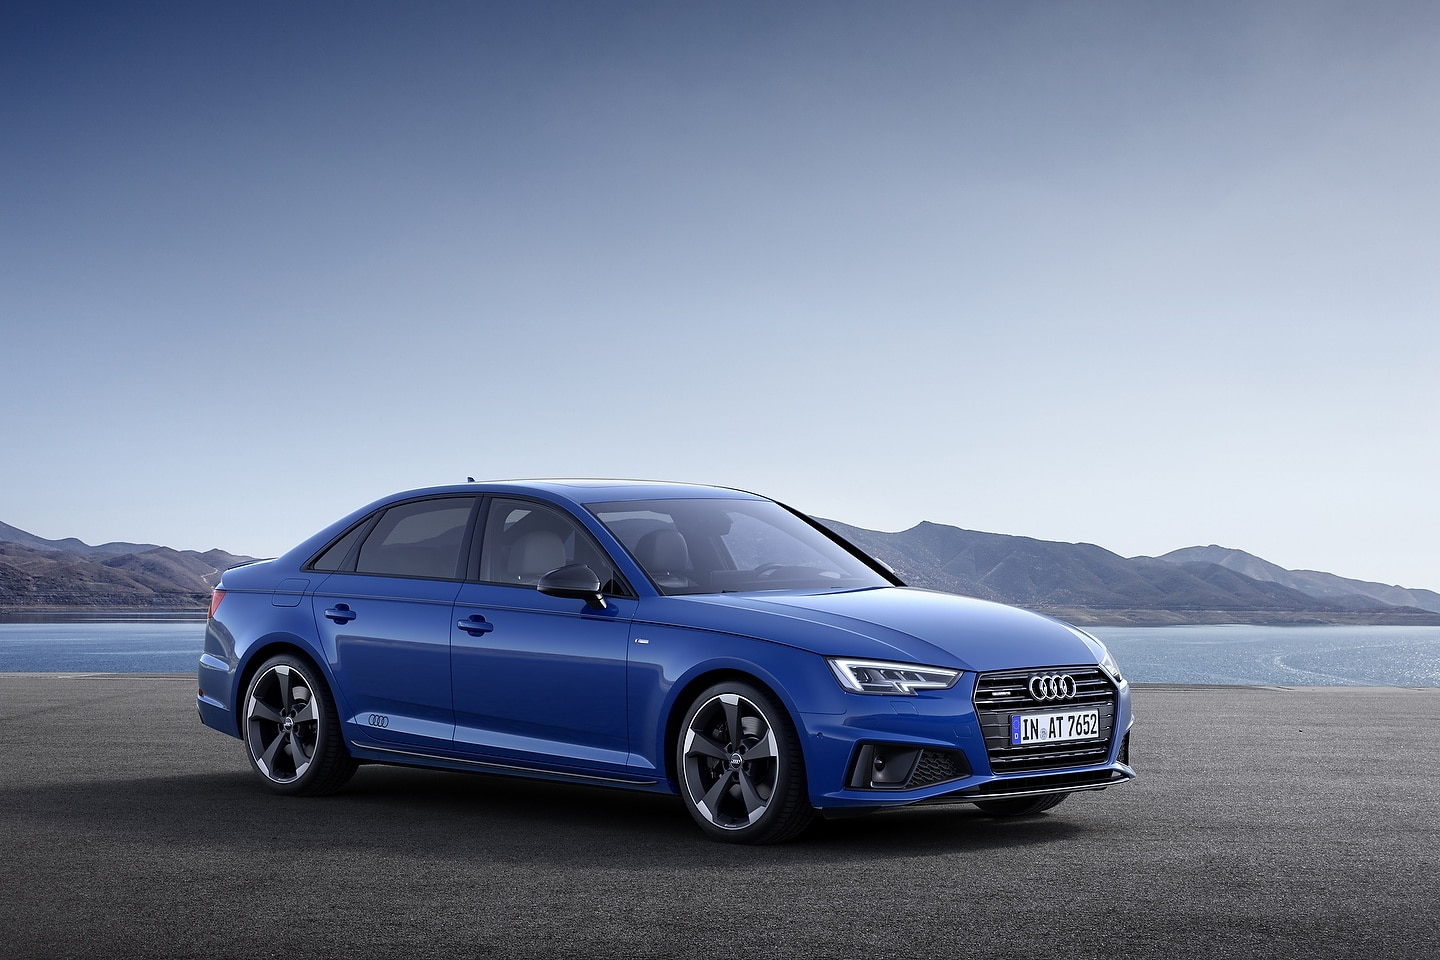 Best-selling cars in Canada - Audi